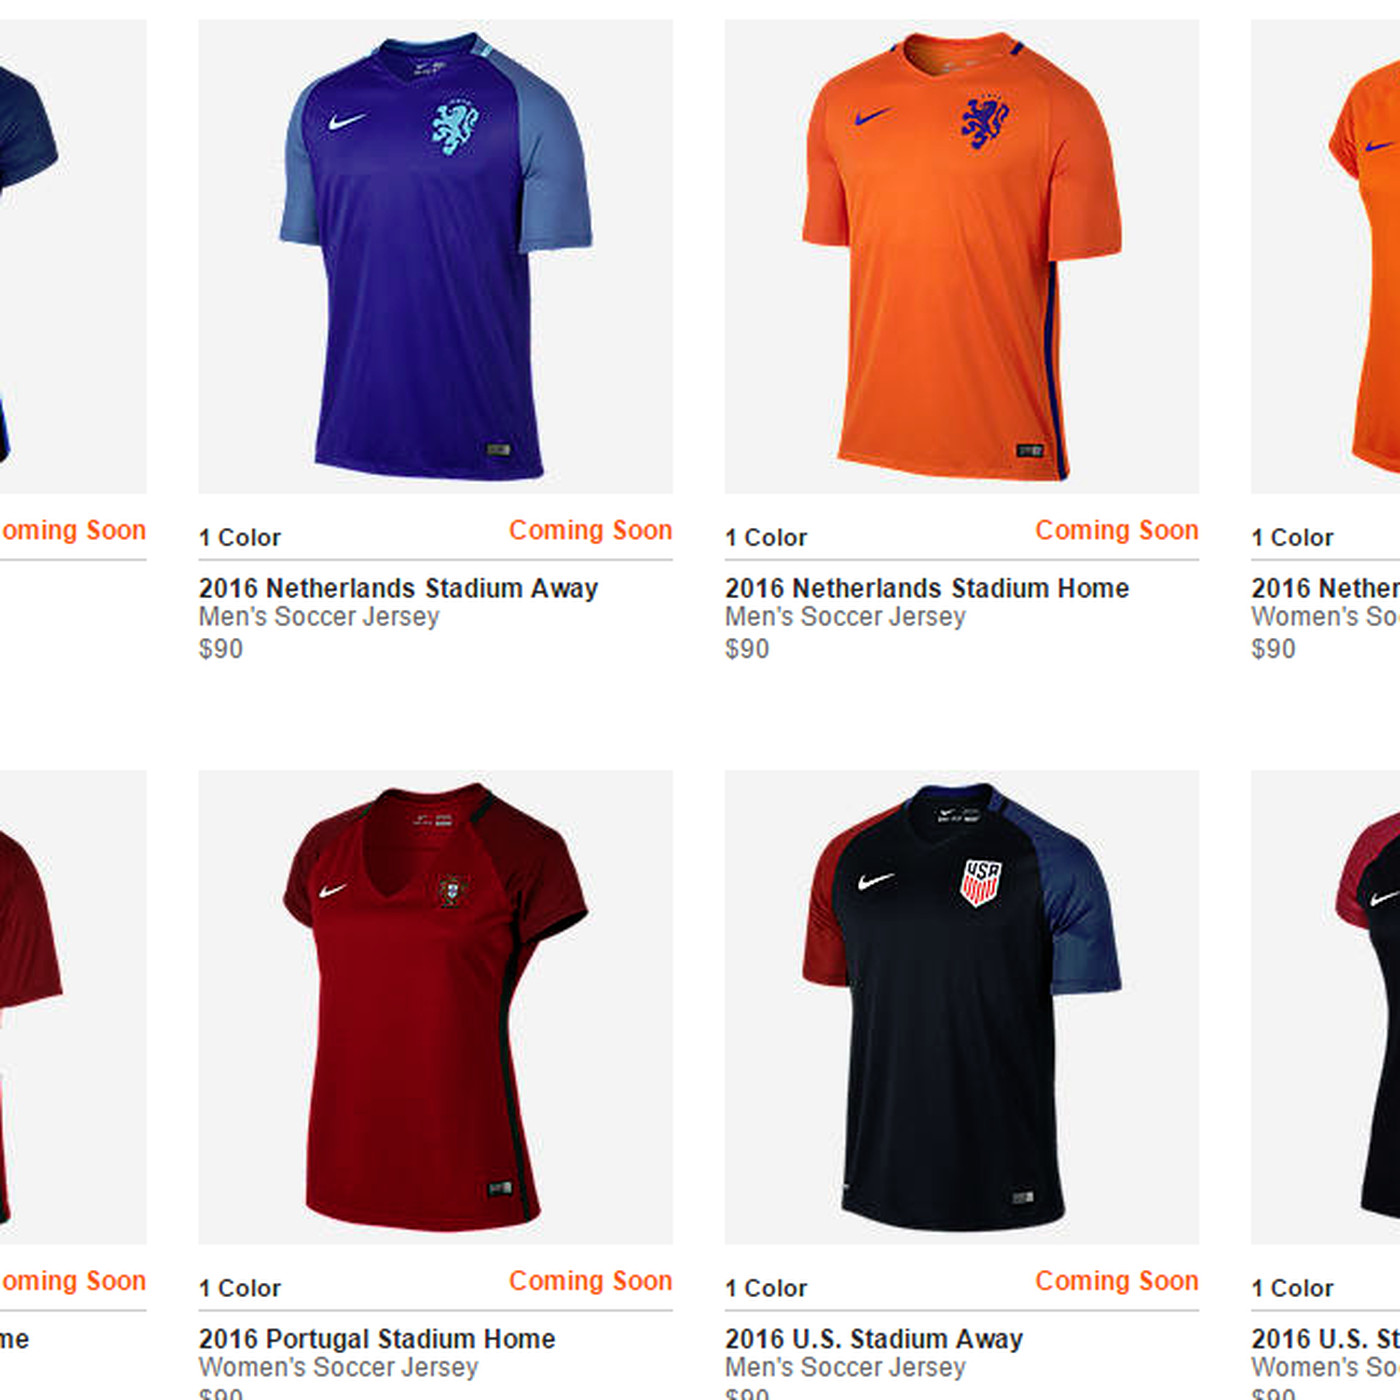 save off b2bda 360f1 Nike Soccer thinks women's jerseys need to show more skin ...